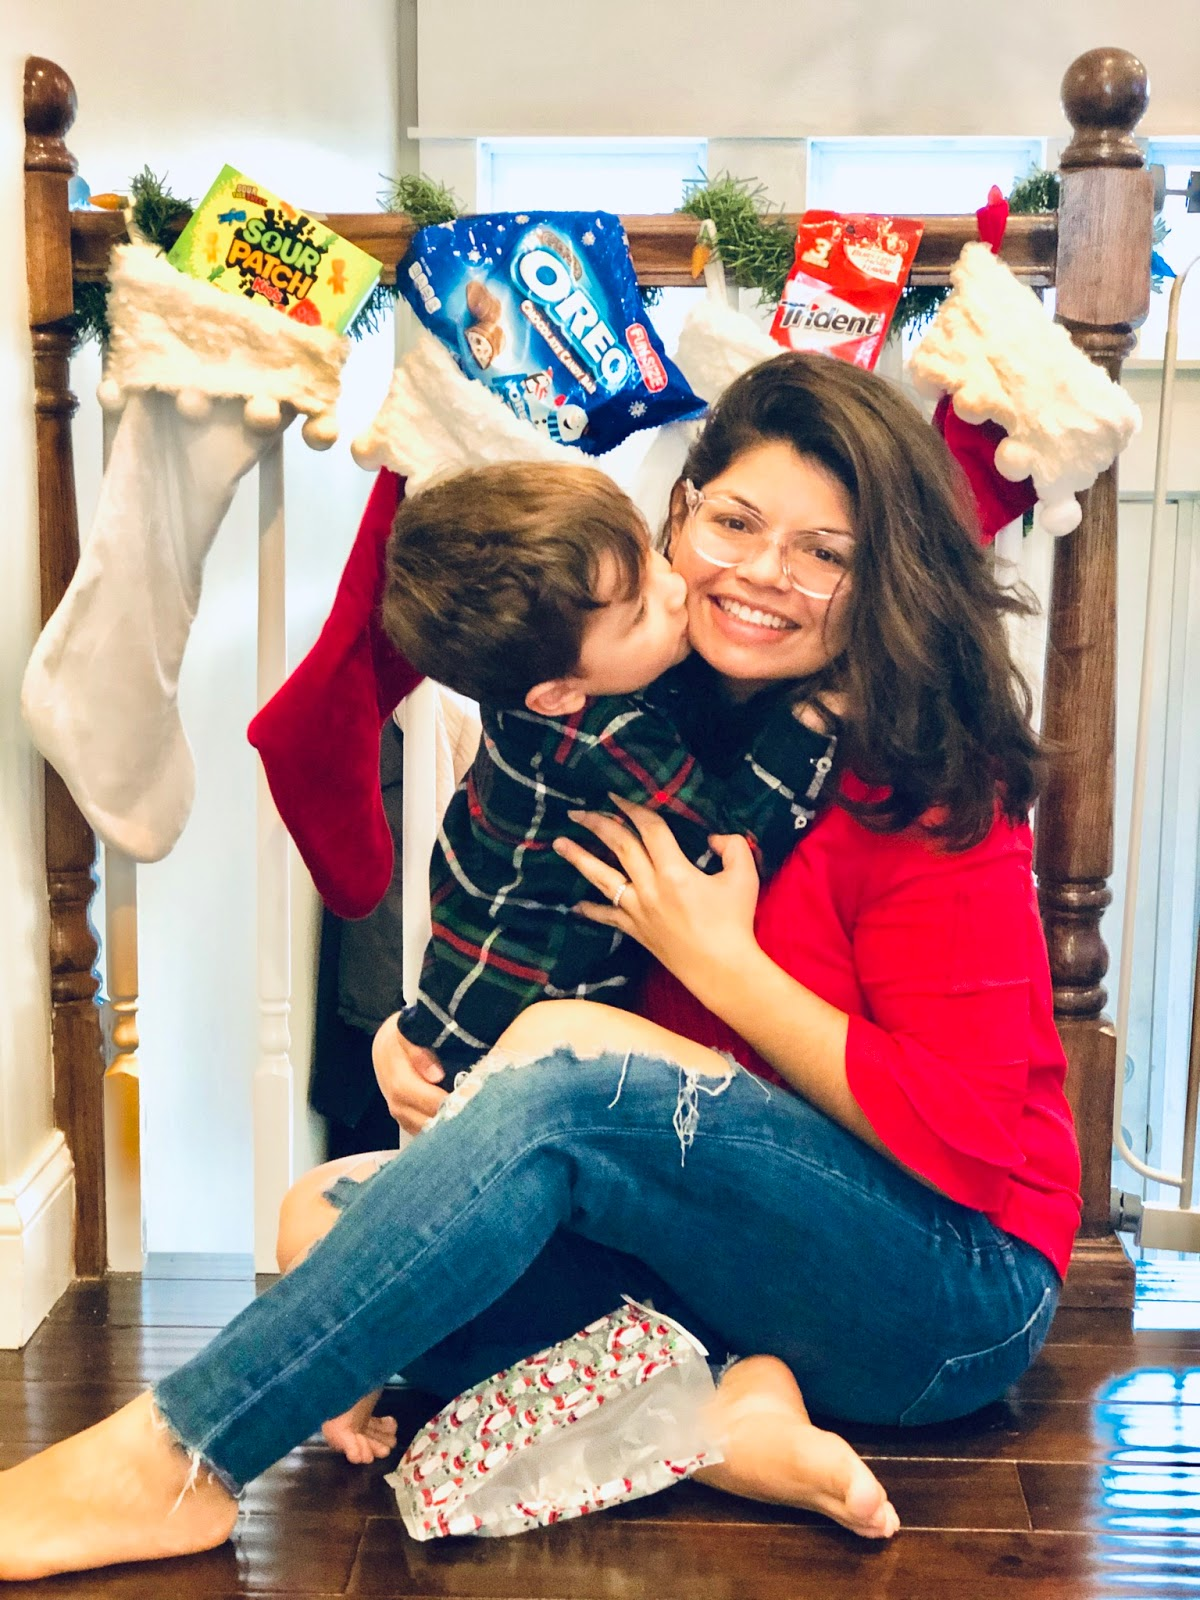 sweets, oreos, sour patch kids, trident, stocking stuffers, holiday goodies, holiday bags, goodie bags, christmas,  long island blogger, nyc blogger, mom blogger, long island mom blogger, latina blogger, latina mom, latina mom blogger